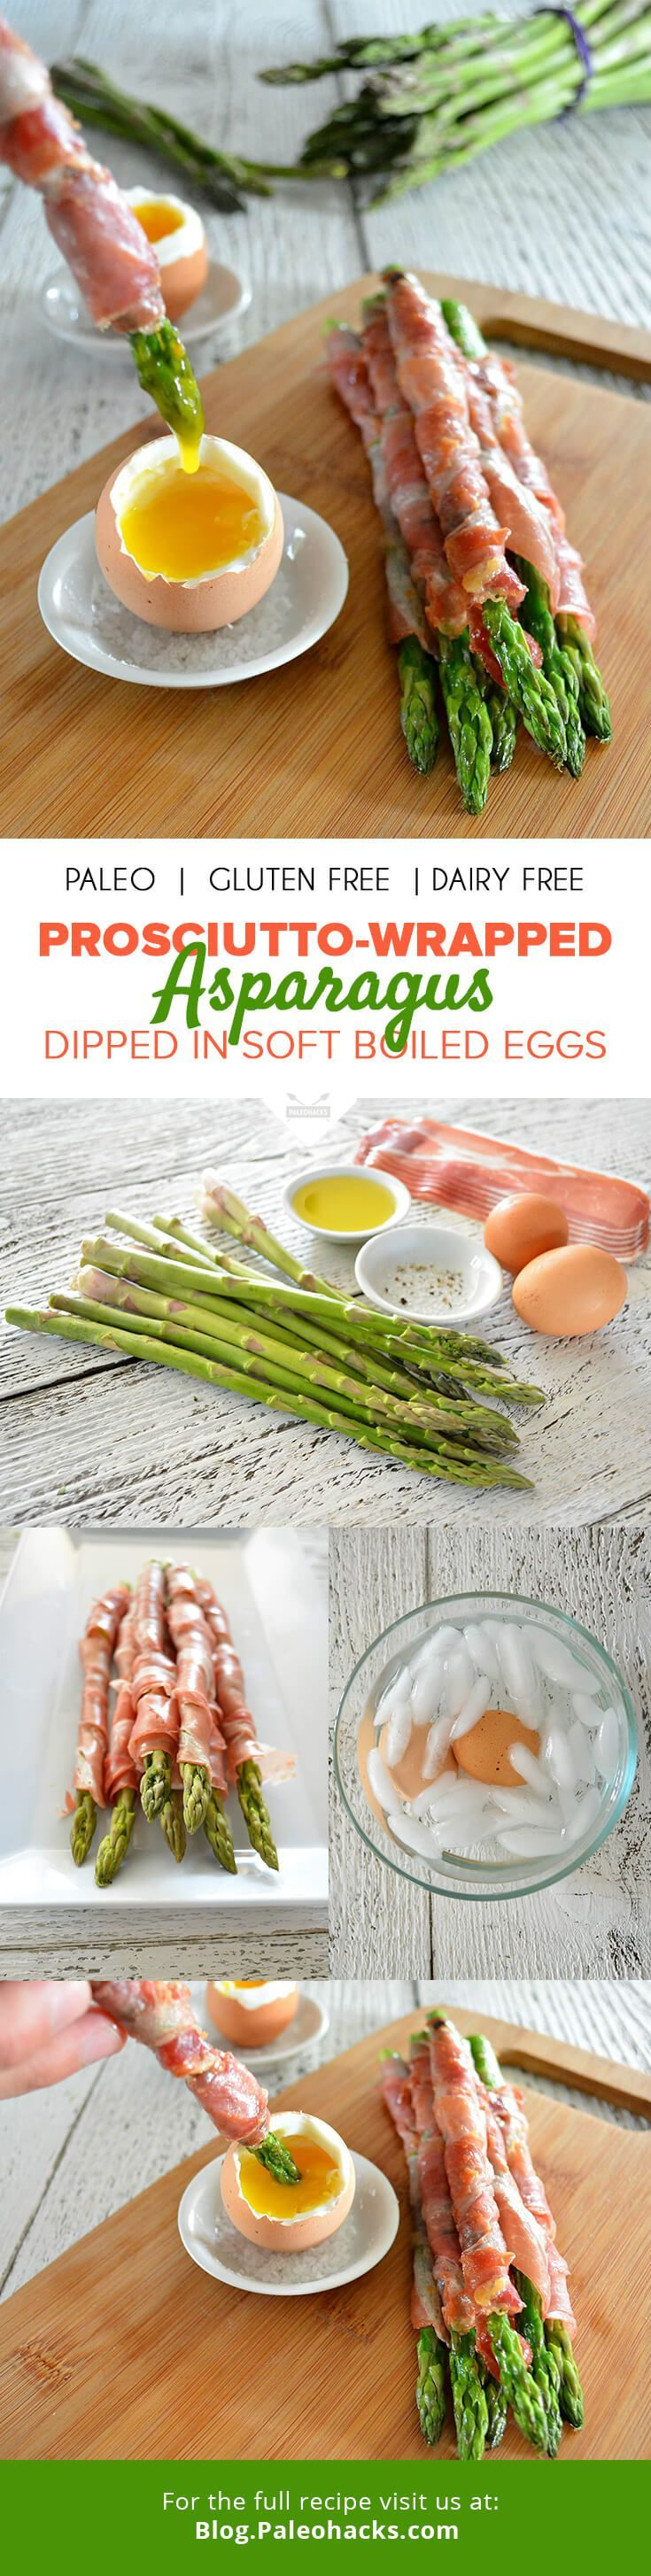 Prosciutto-Wrapped Asparagus Dipped in Soft Boiled Eggs  #justeatrealfood #paleohacks